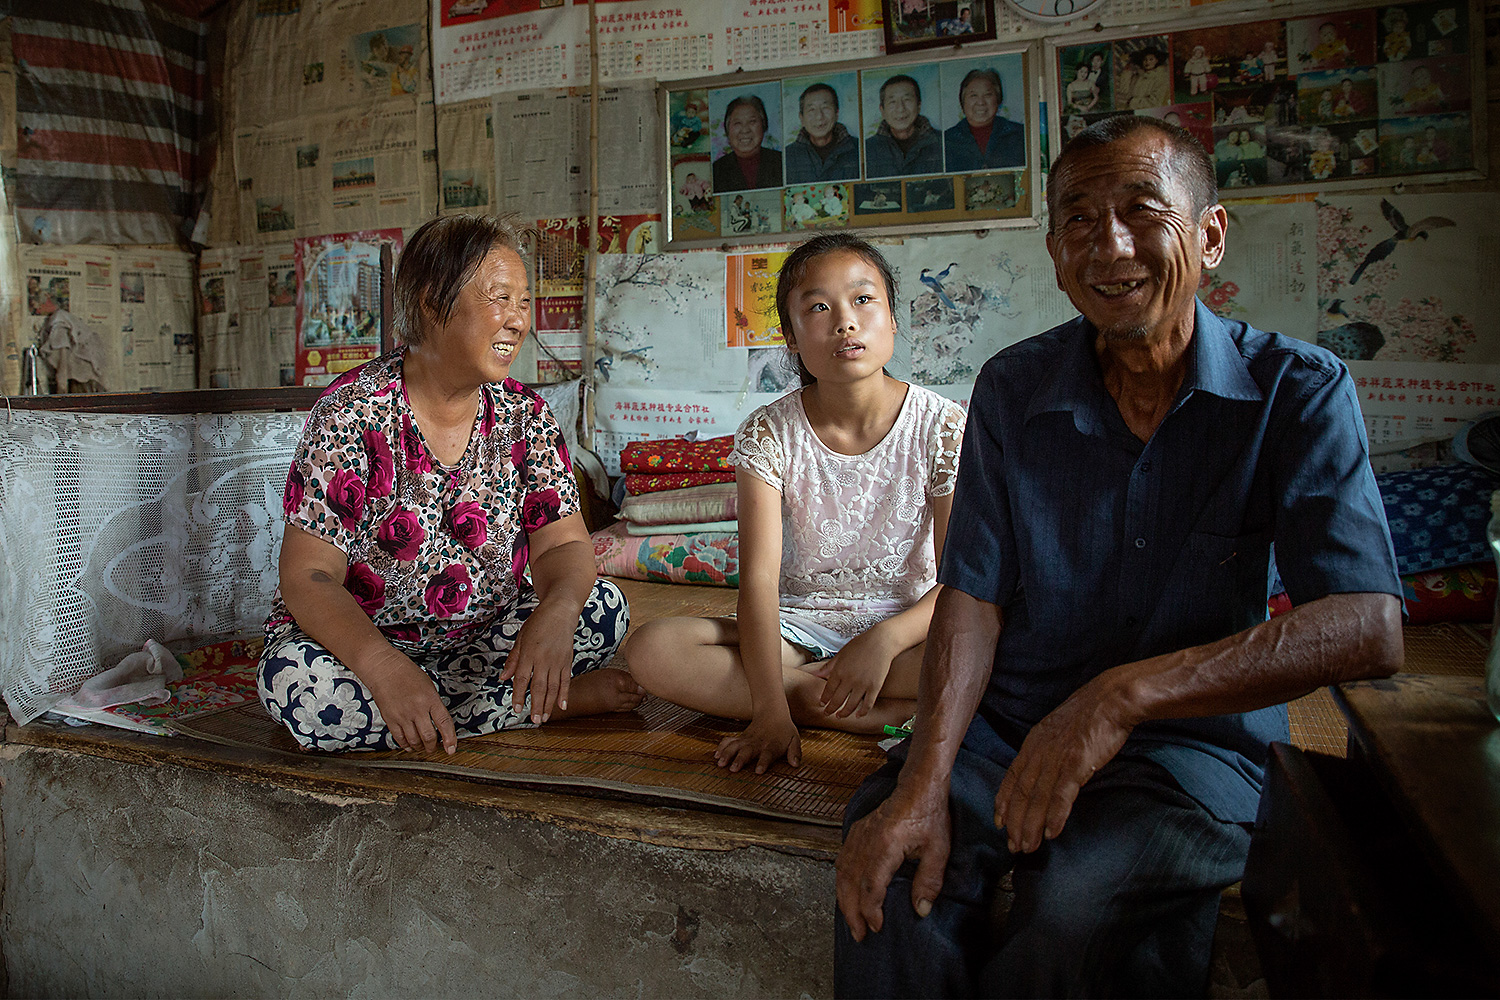 Swallow, 14, sits with her caretakers, her grandfather and his partner, in their home. Her father died in an accident when she was younger and her mother lives and works in Yuncheng, the closest biggest city, but never visits or contacts her. Swallow says her dream is to visit family in Yuncheng, less than 31 miles away. Swallow benefits from the support of one of China's growing number of 'Barefoot Social Workers'—community-selected individuals who are trained by UNICEF to provide child protection and welfare services in rural villages. Photo by Sharron Lovell @sharron_l / UNICEF China